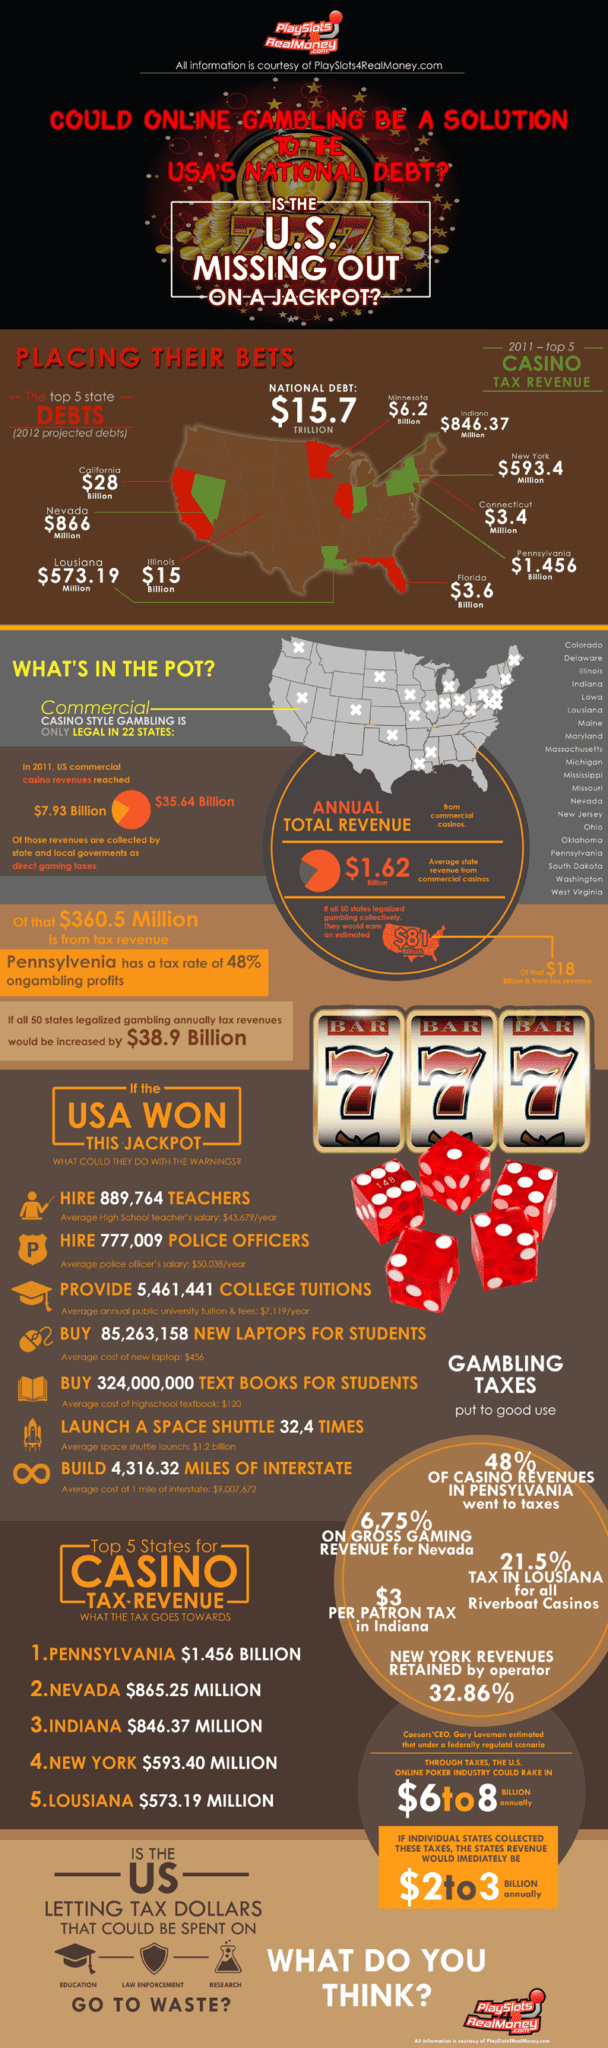 online free casino burn the sevens online